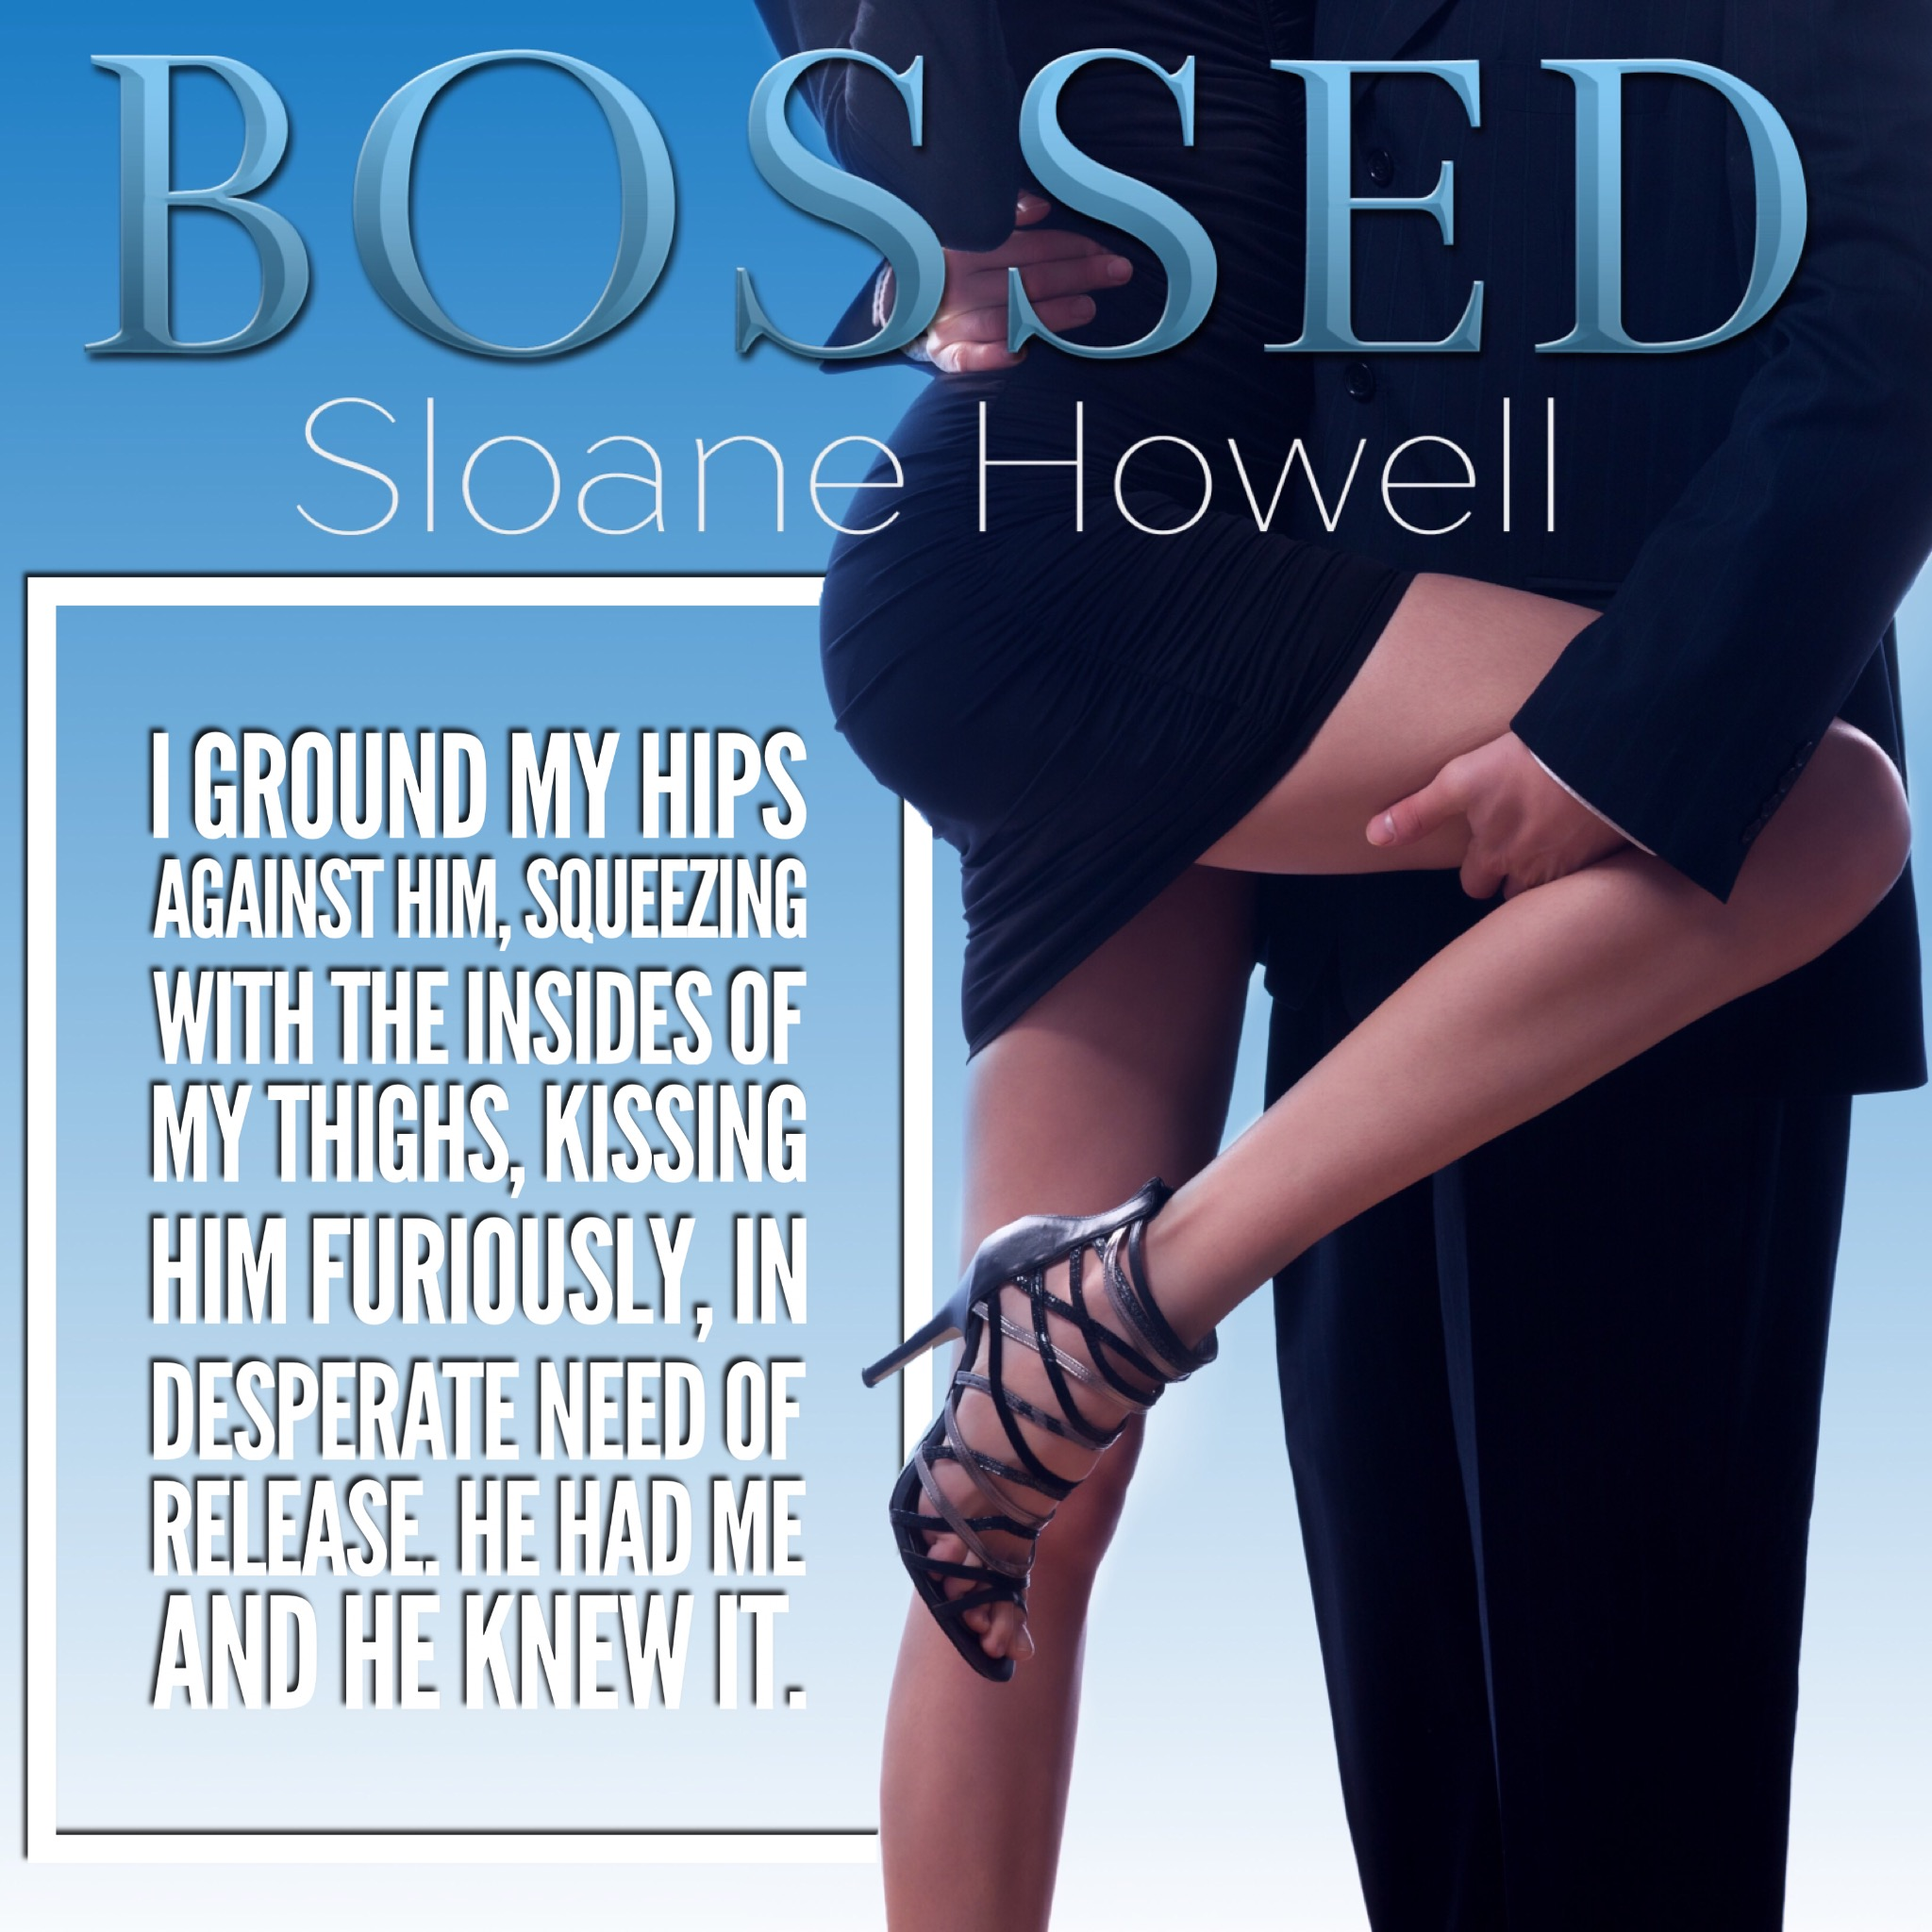 Bossed (Sloane Howell)